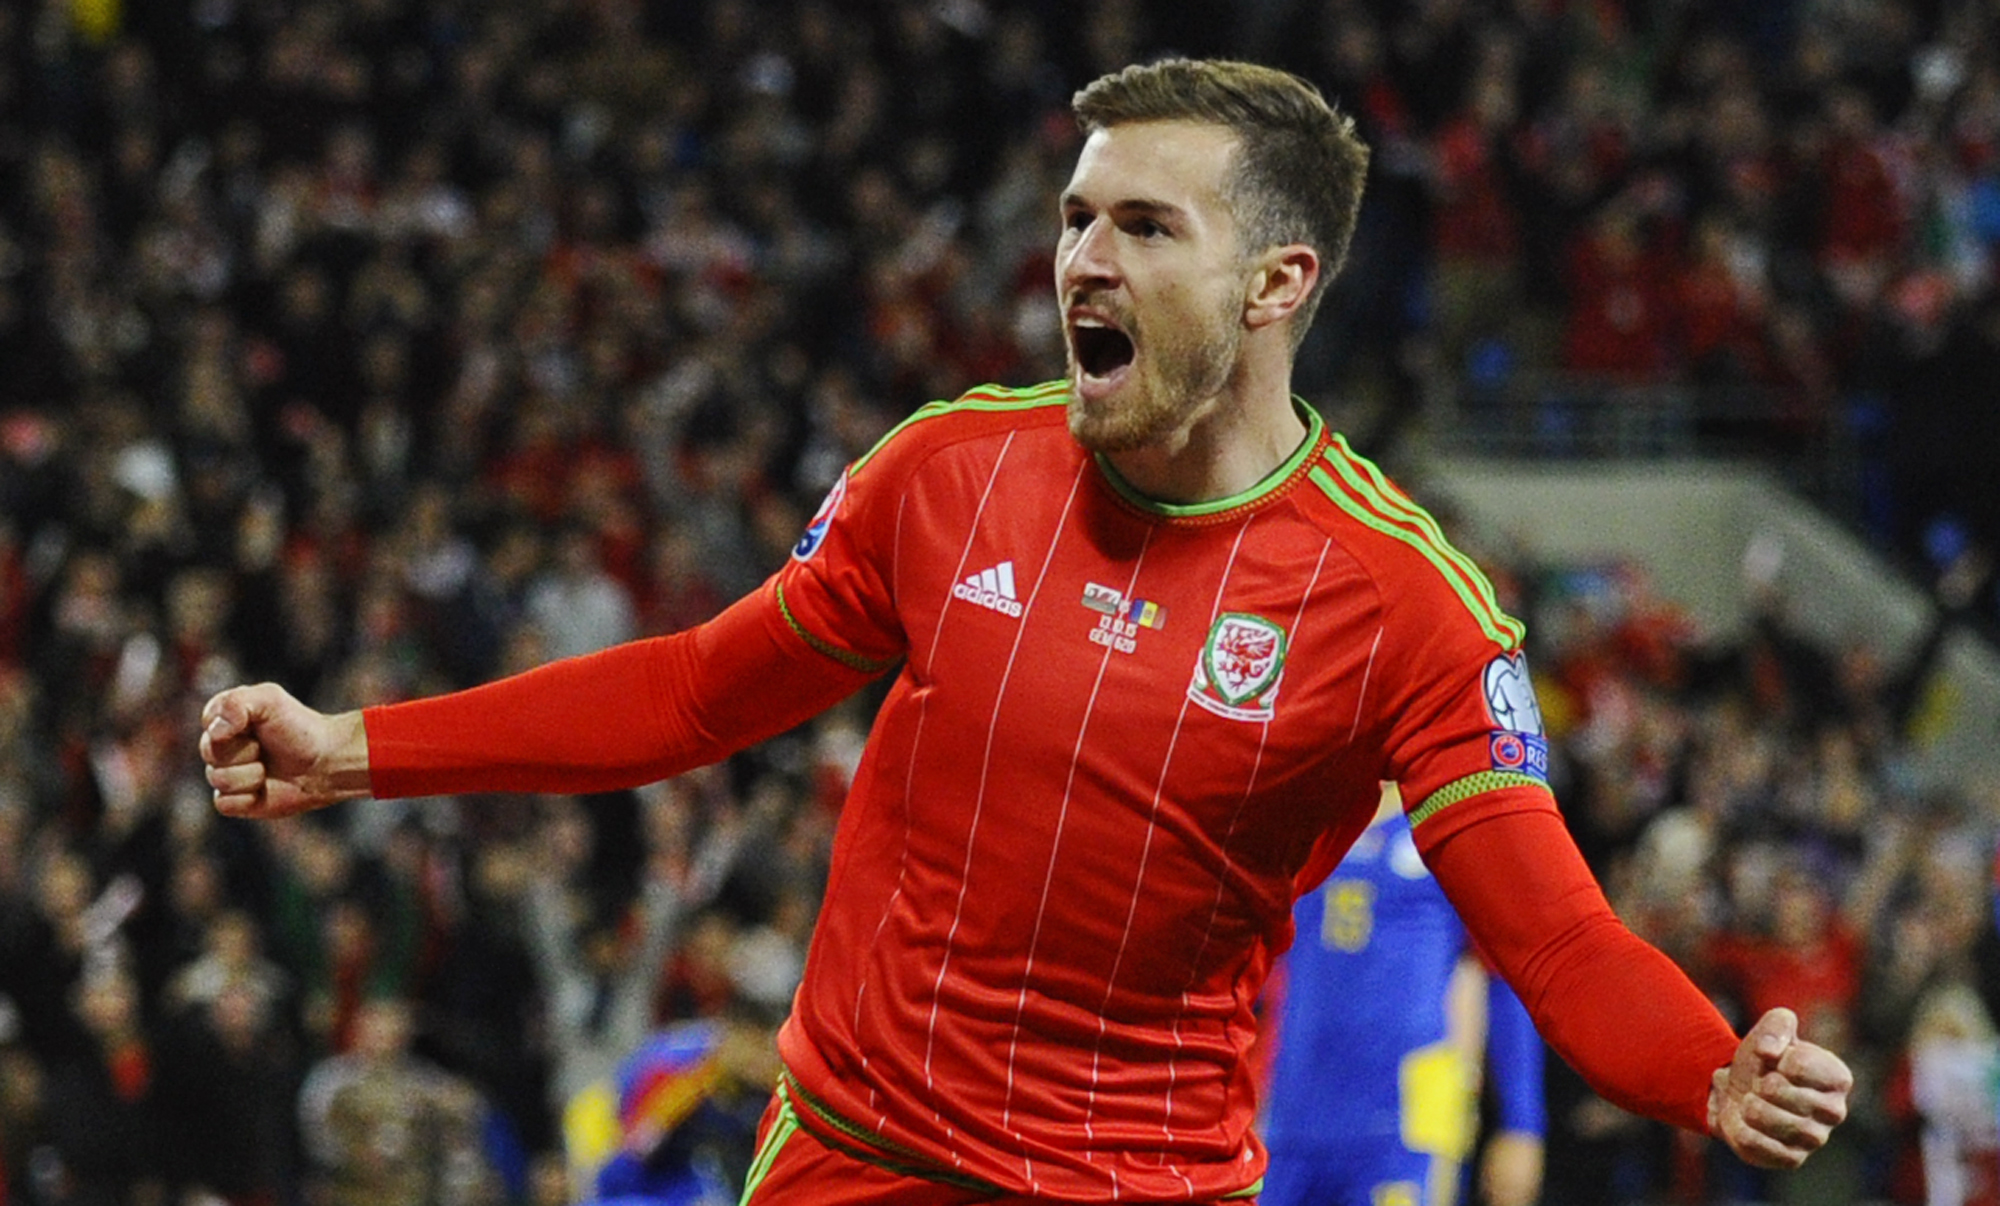 Football - Wales v Andorra - UEFA Euro 2016 Qualifying Group B - Cardiff City Stadium, Cardiff, Wales - 13/10/15nAaron Ramsey celebrates after scoring the first goal for WalesnReuters / Rebecca NadennLivepicnEDITORIAL USE ONLY.